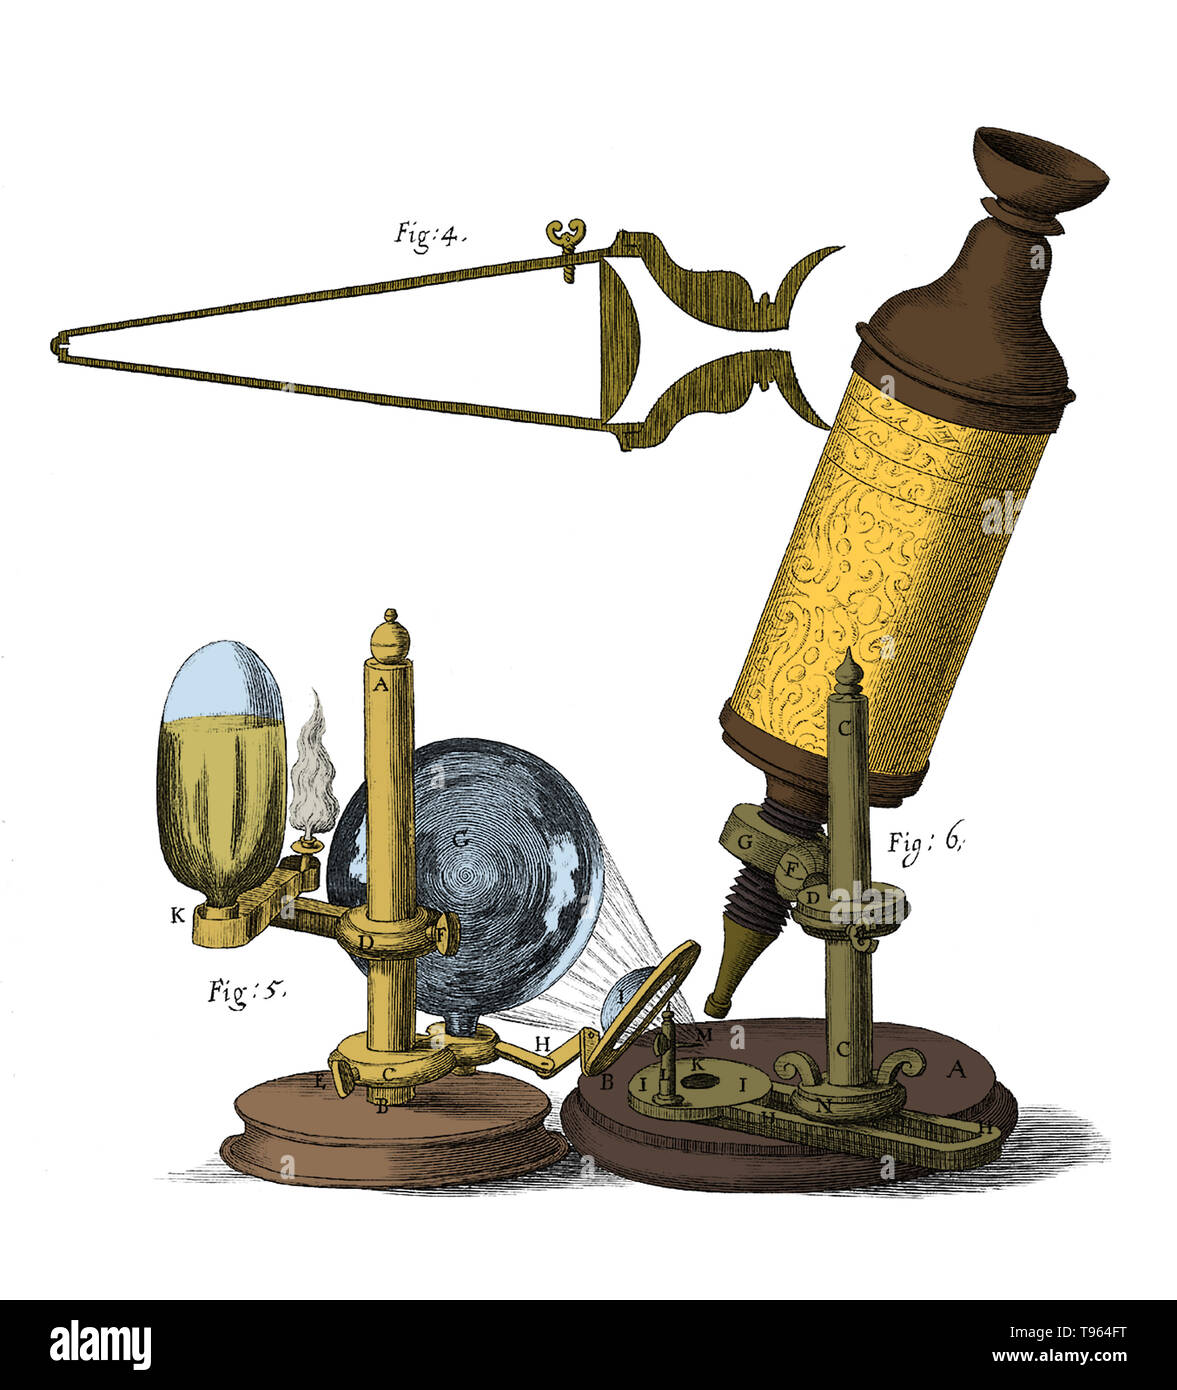 The hand-crafted, leather and gold-tooled microscope Robert Hooke used to make the observations for Micrographia (1665), was originally constructed by Christopher White in London. The microscope shared several common features with telescopes of the period: an eyecup to maintain the correct distance between the eye and eyepiece, separate draw tubes for focusing, and a ball and socket joint for inclining the body. - Stock Image